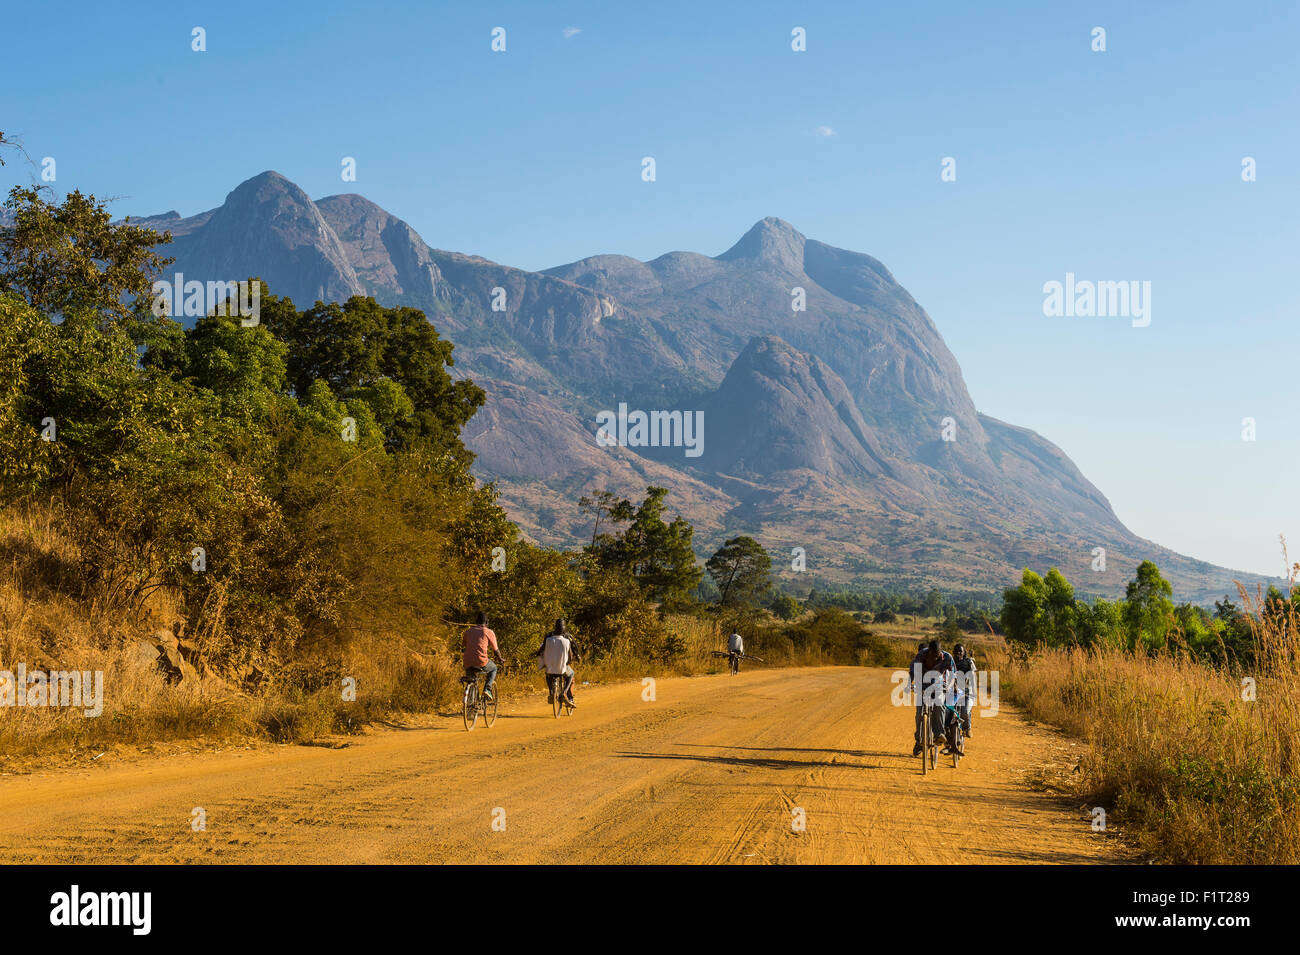 Road leading to the granite peaks of Mount Mulanje, Malawi, Africa - Stock Image